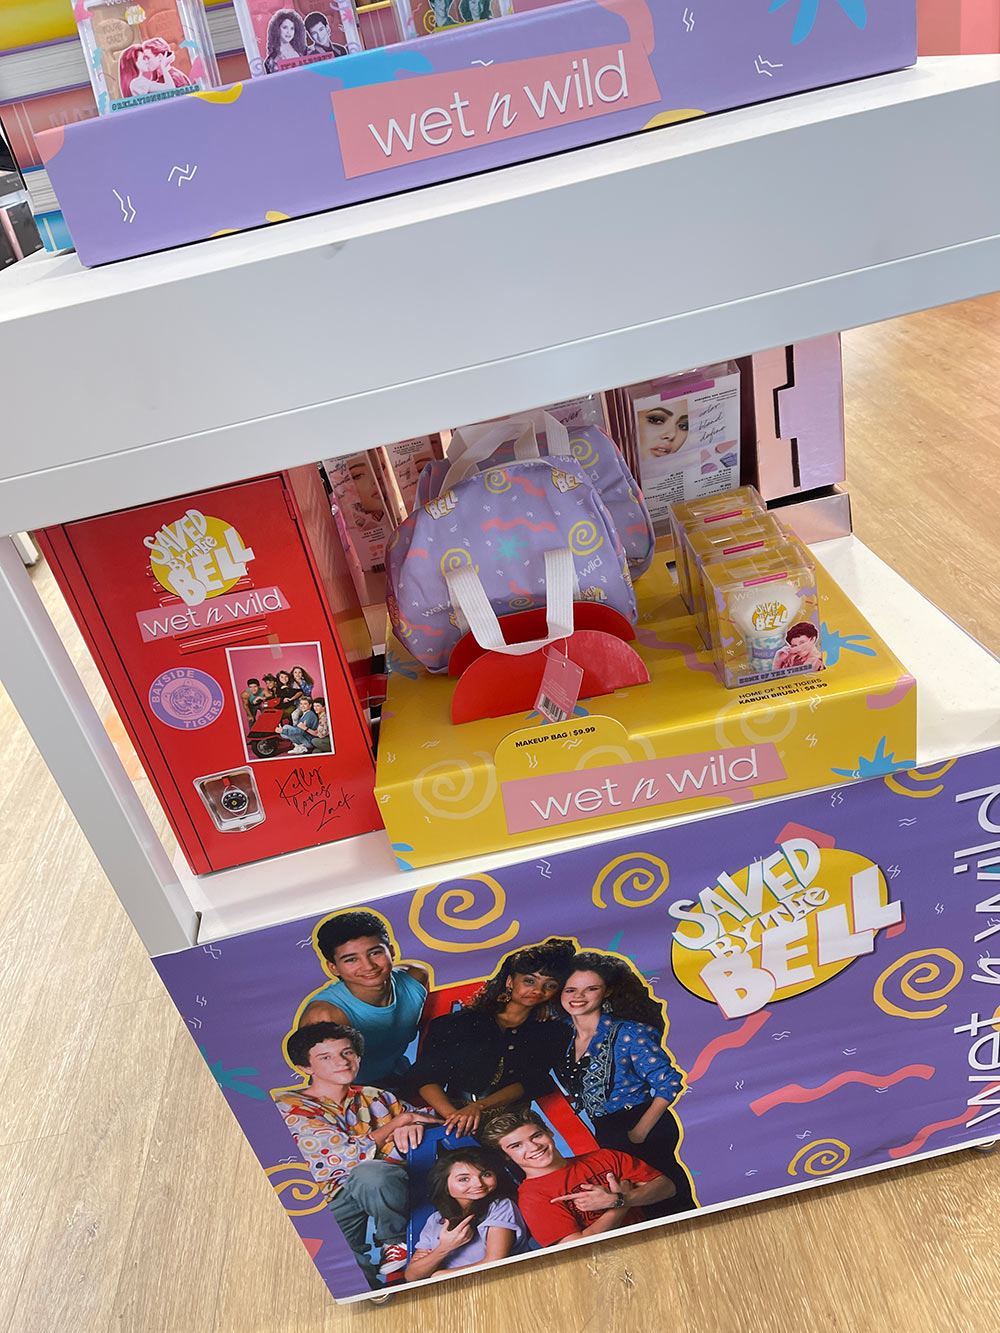 saved by the bell display 2